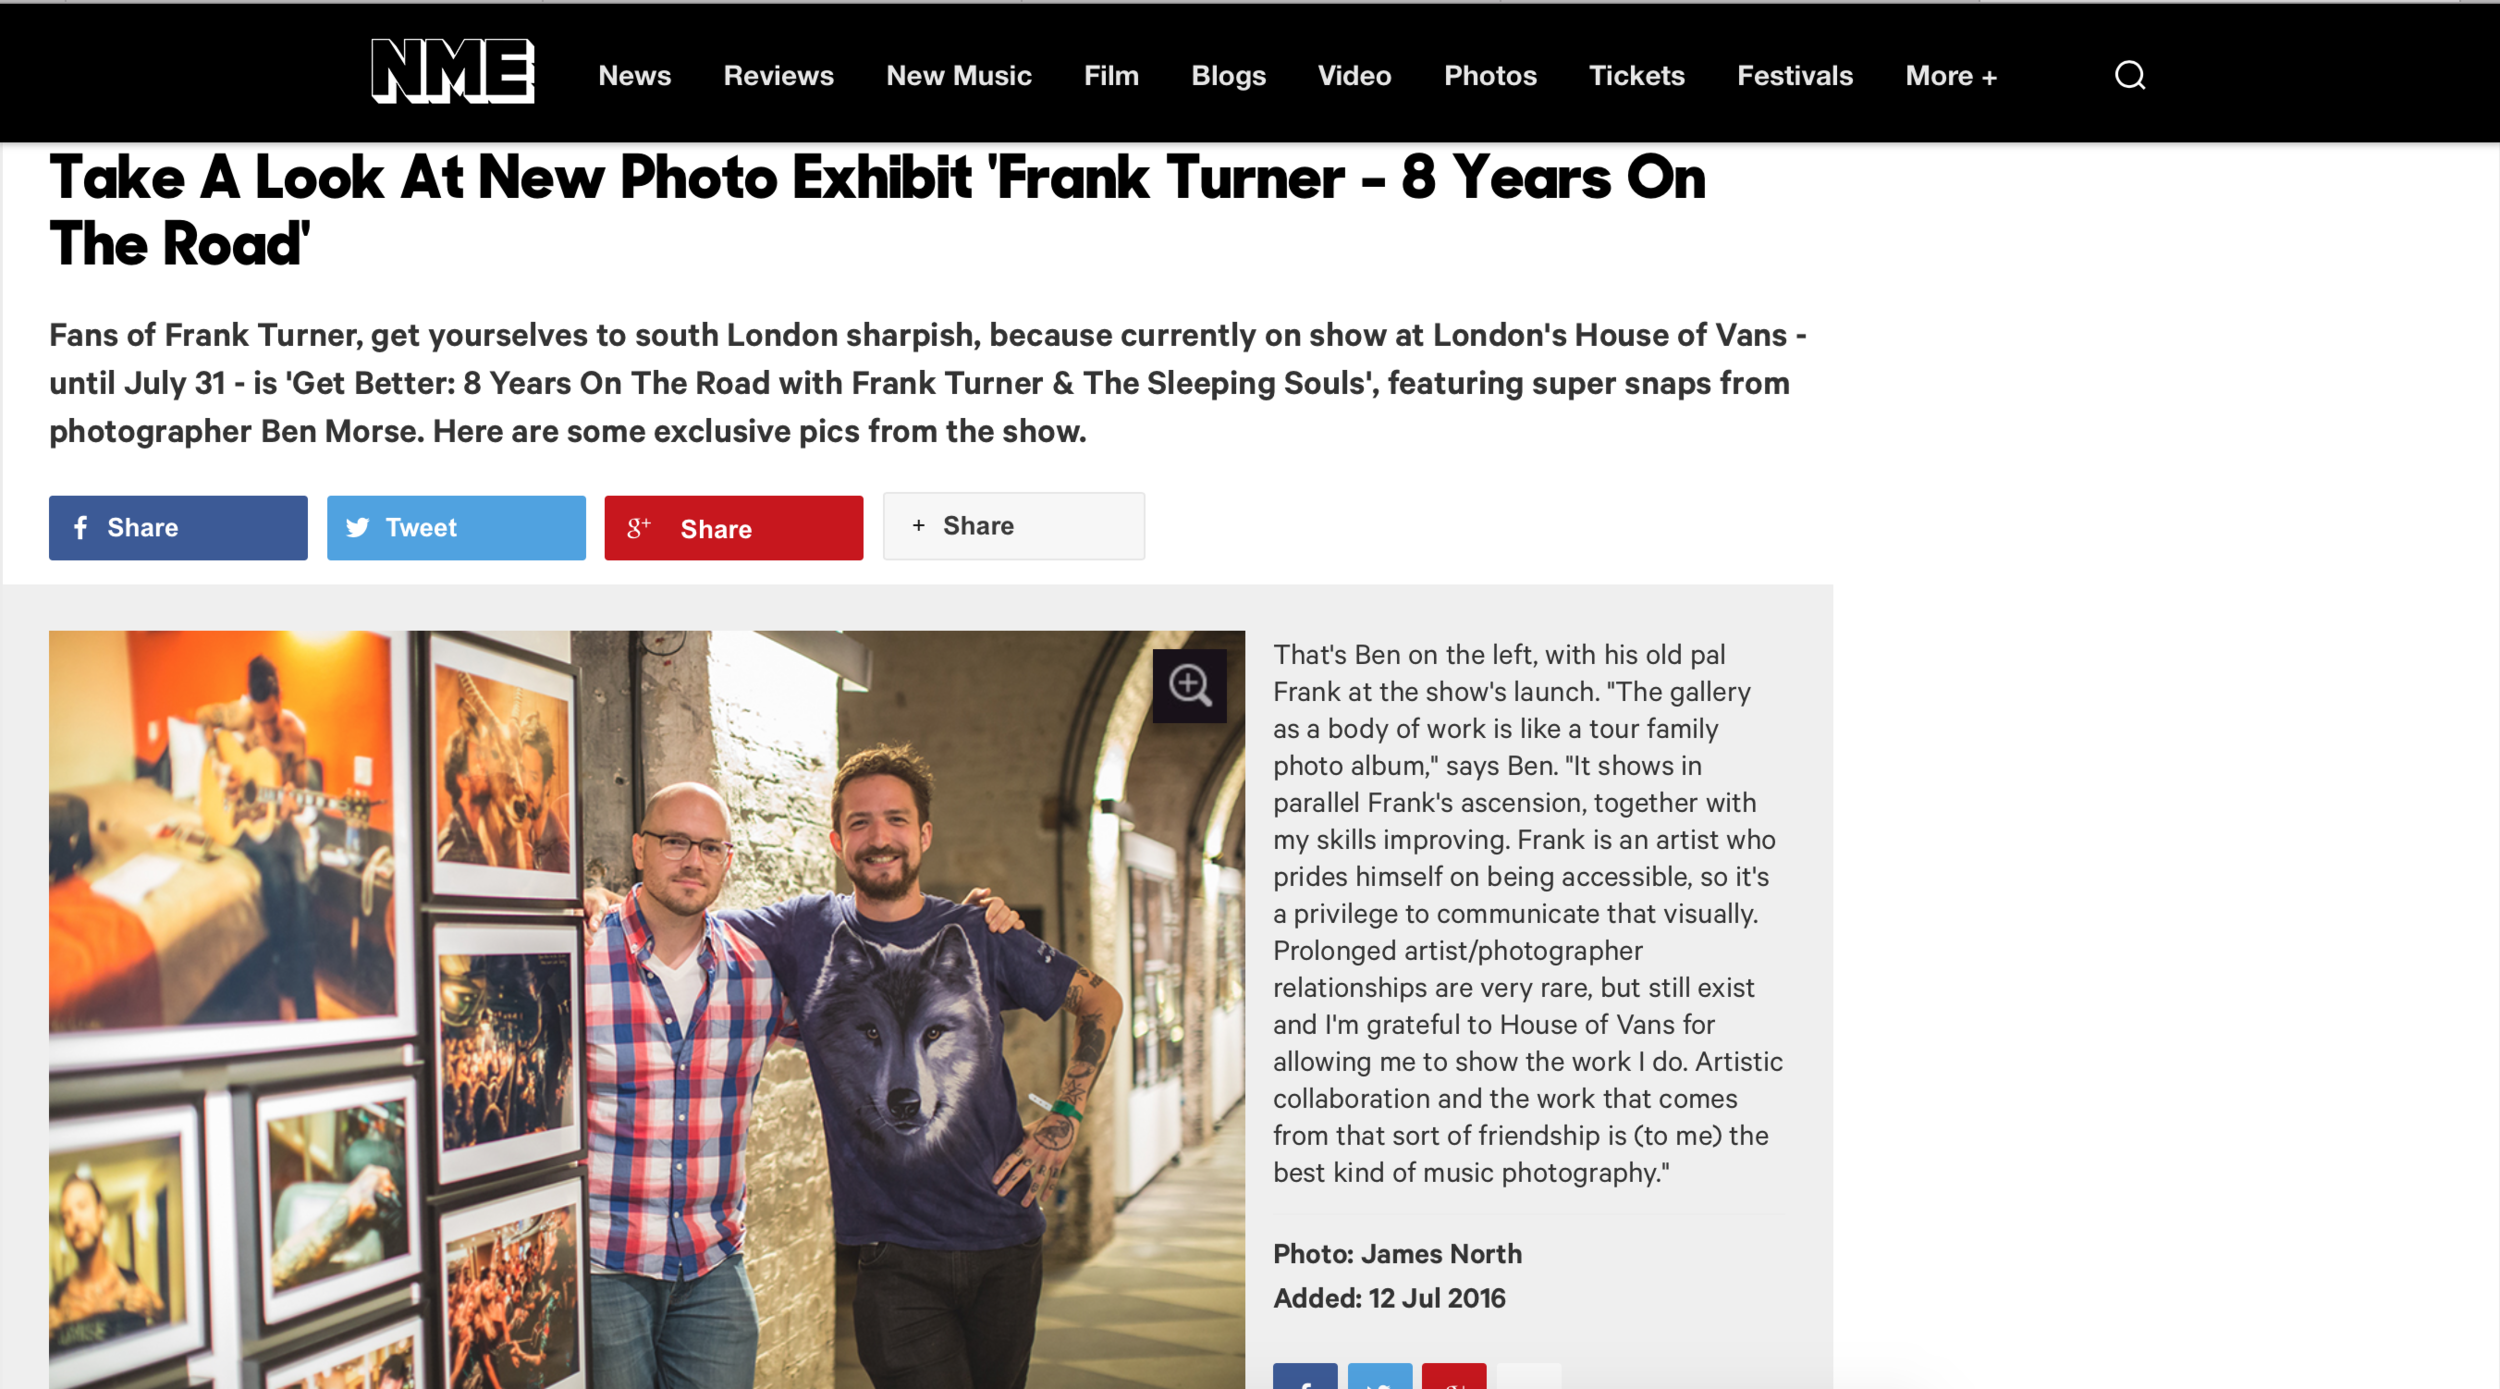 NME: House of Vans Gallery show, July 2016